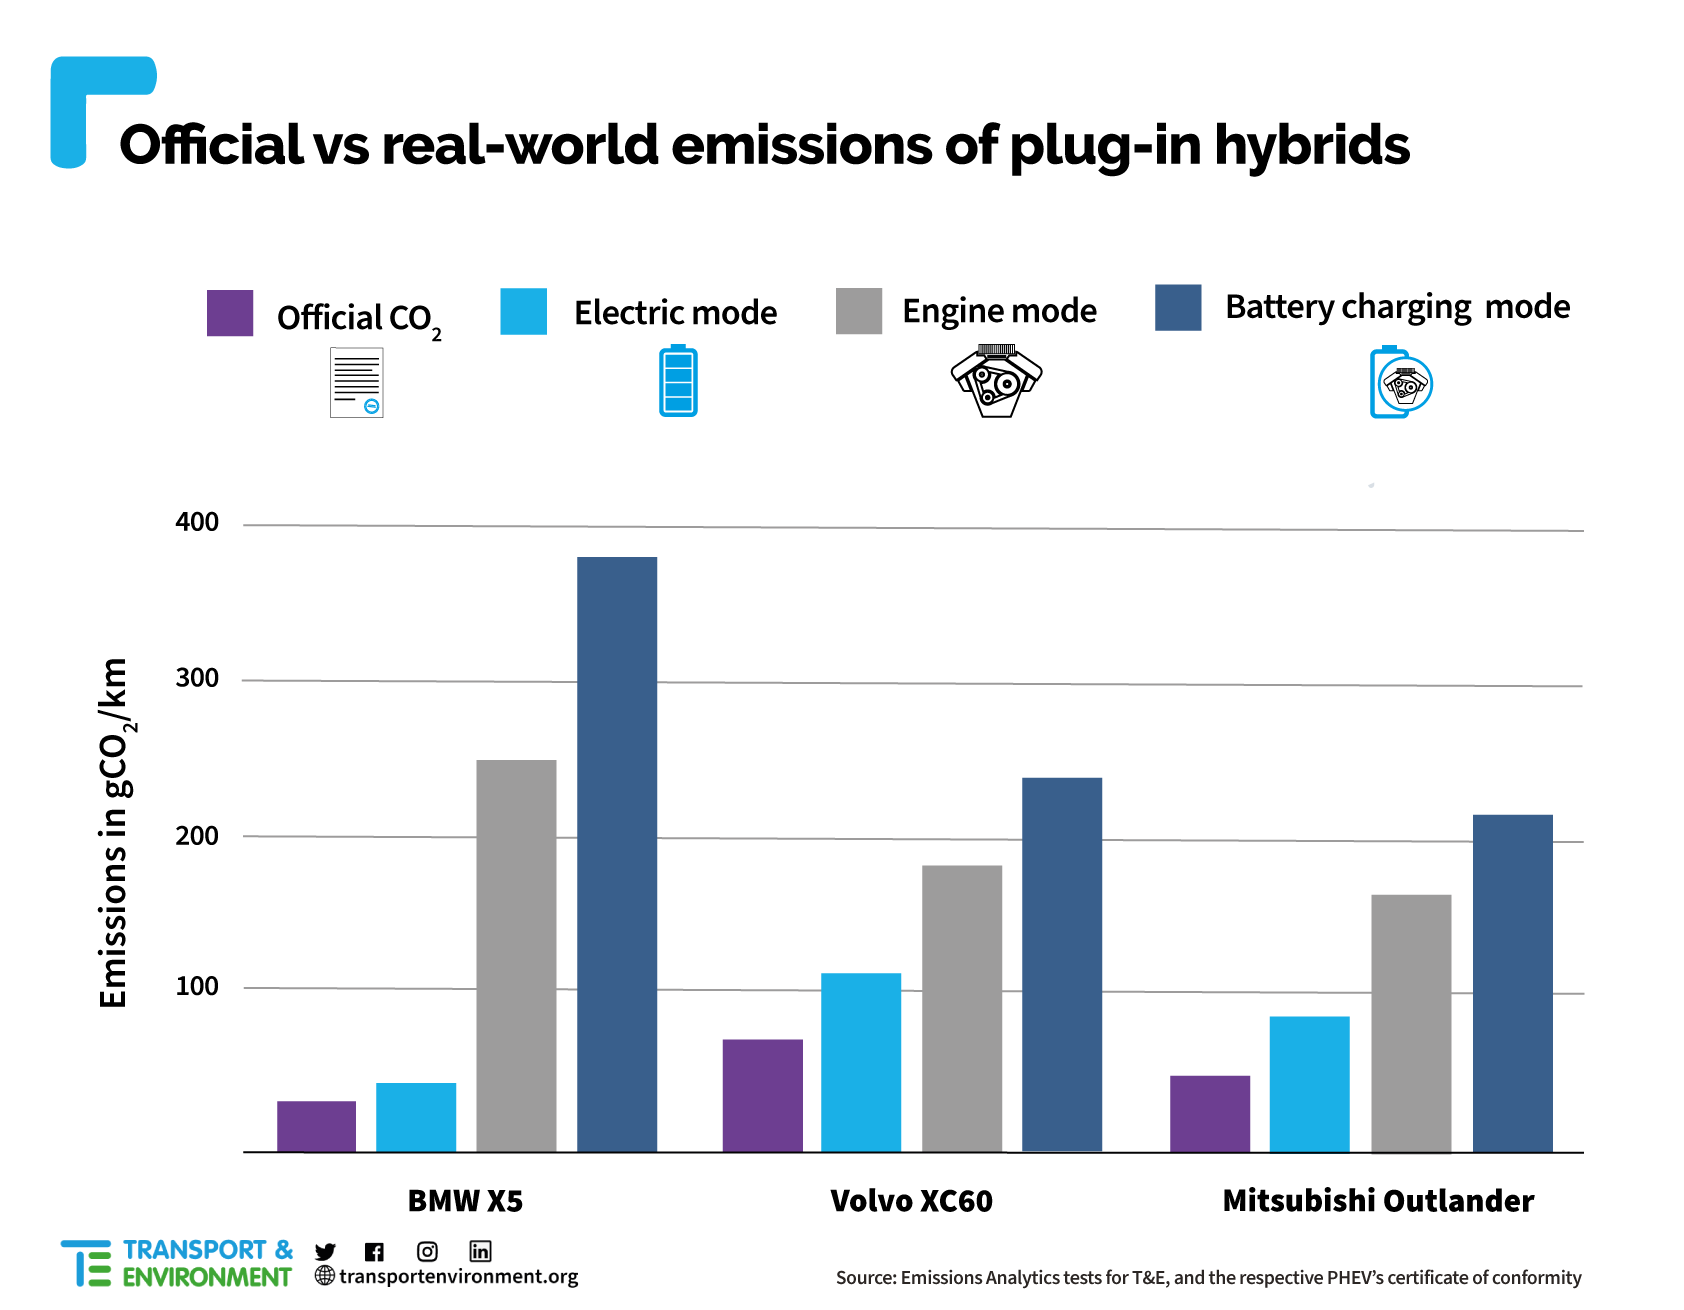 Tesla BEVs Have Zero Emissions While Plug-in Hybrids Can Emit up to 12X More CO2 than Advertised